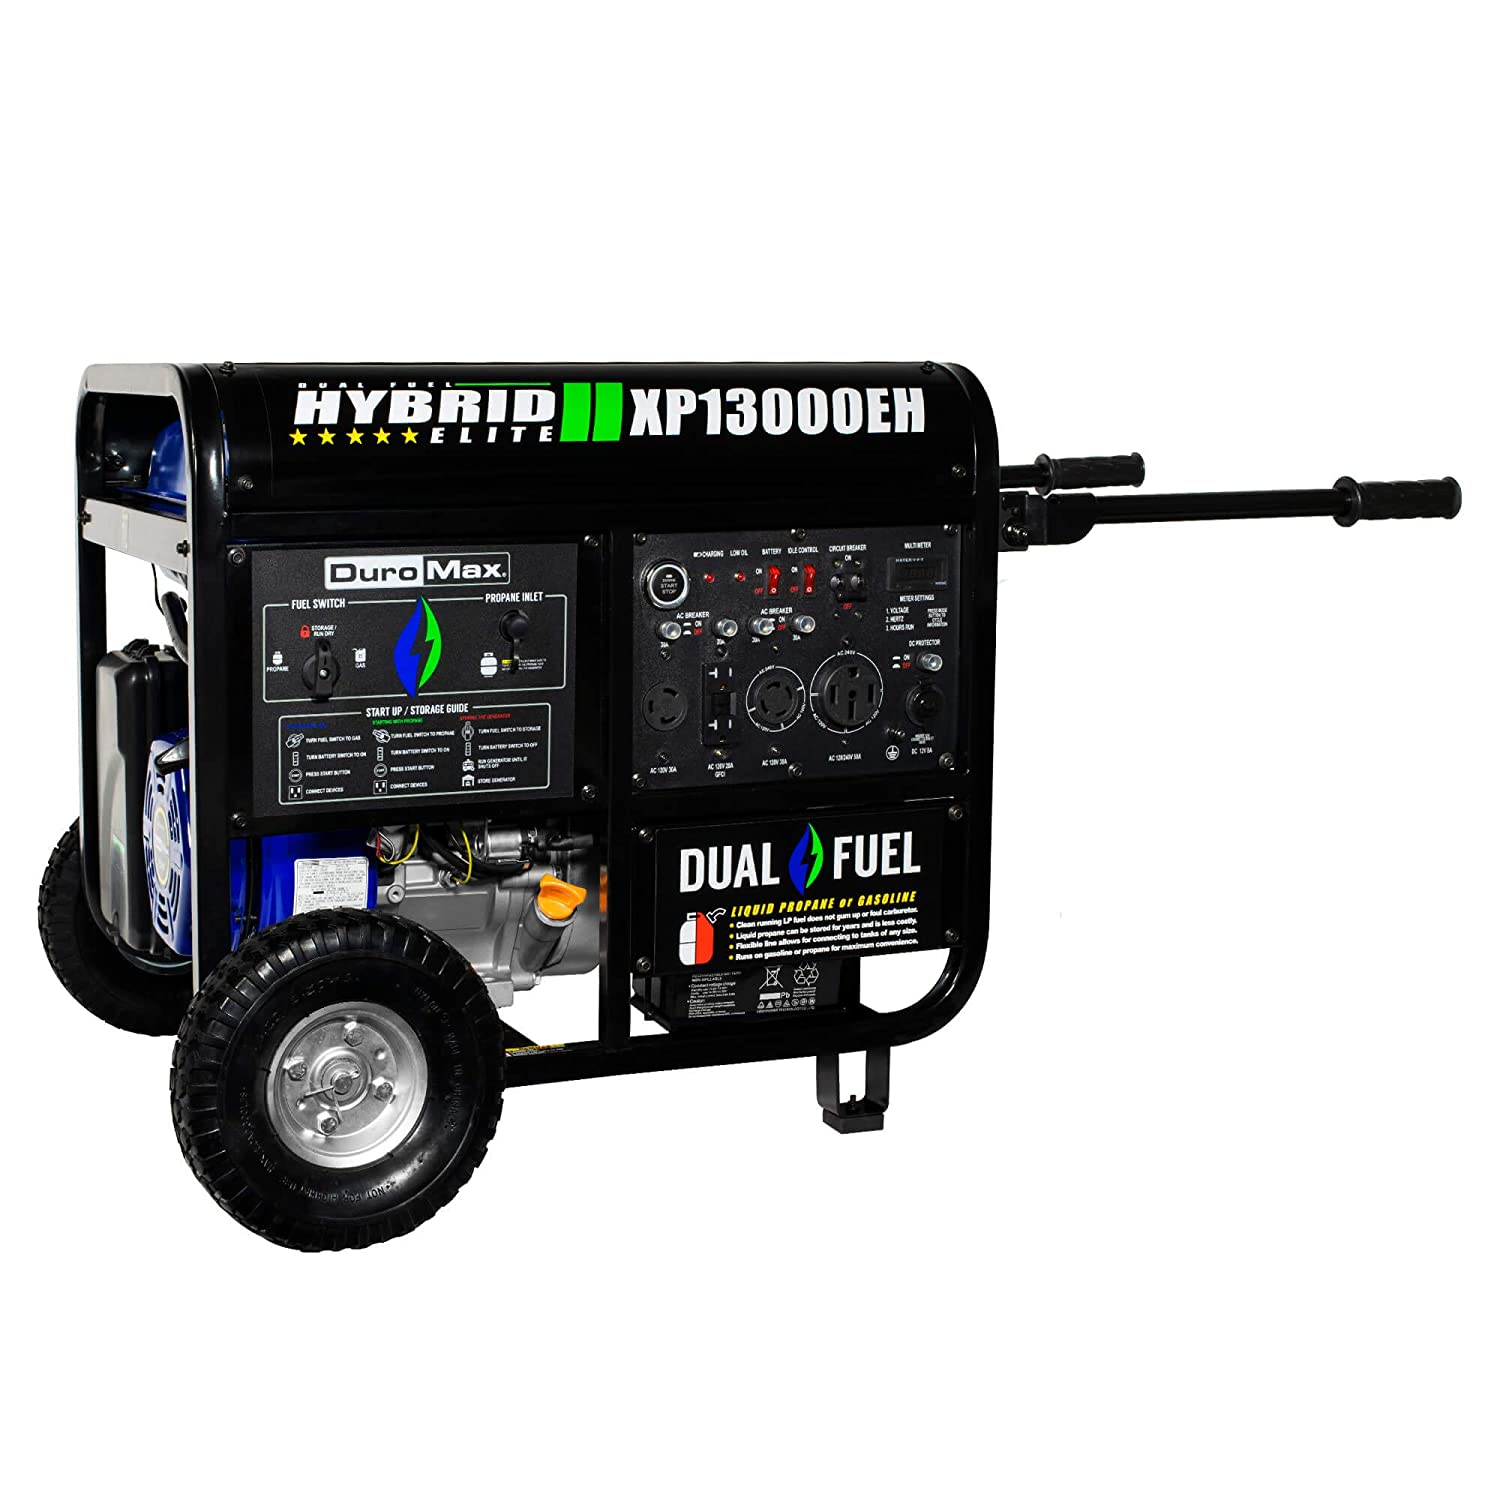 Amazon.com : DuroMax XP13000EH 13000 Watt Portable Hybrid Gas Propane Generator : Garden & Outdoor